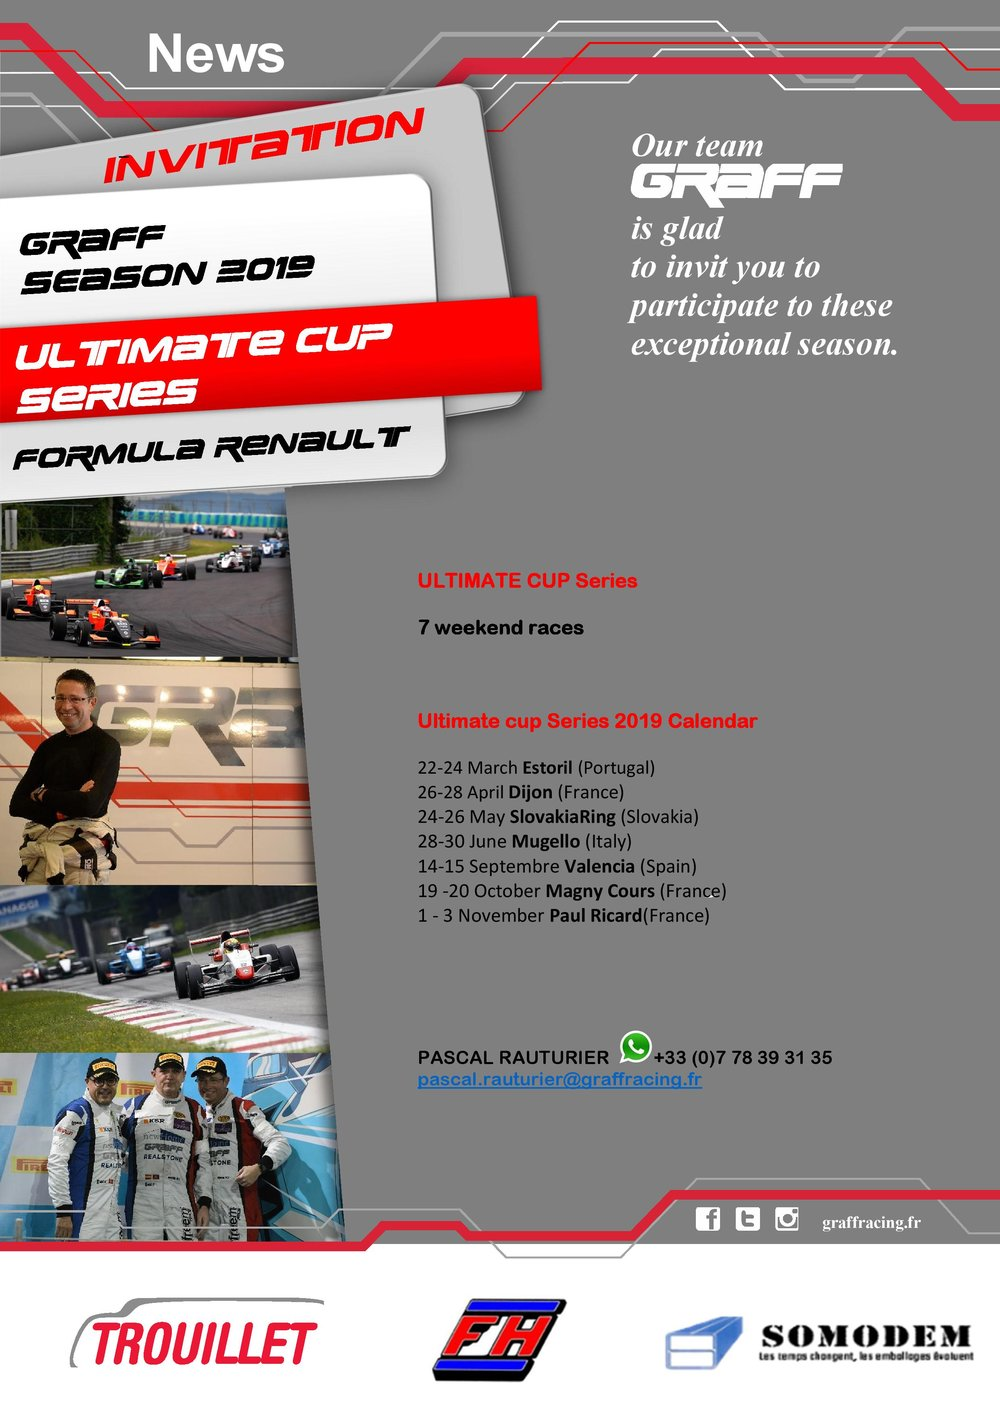 INVITATION ULTIMATE 2019  - GRAFF FORMULA RENAULT-page-001.jpg